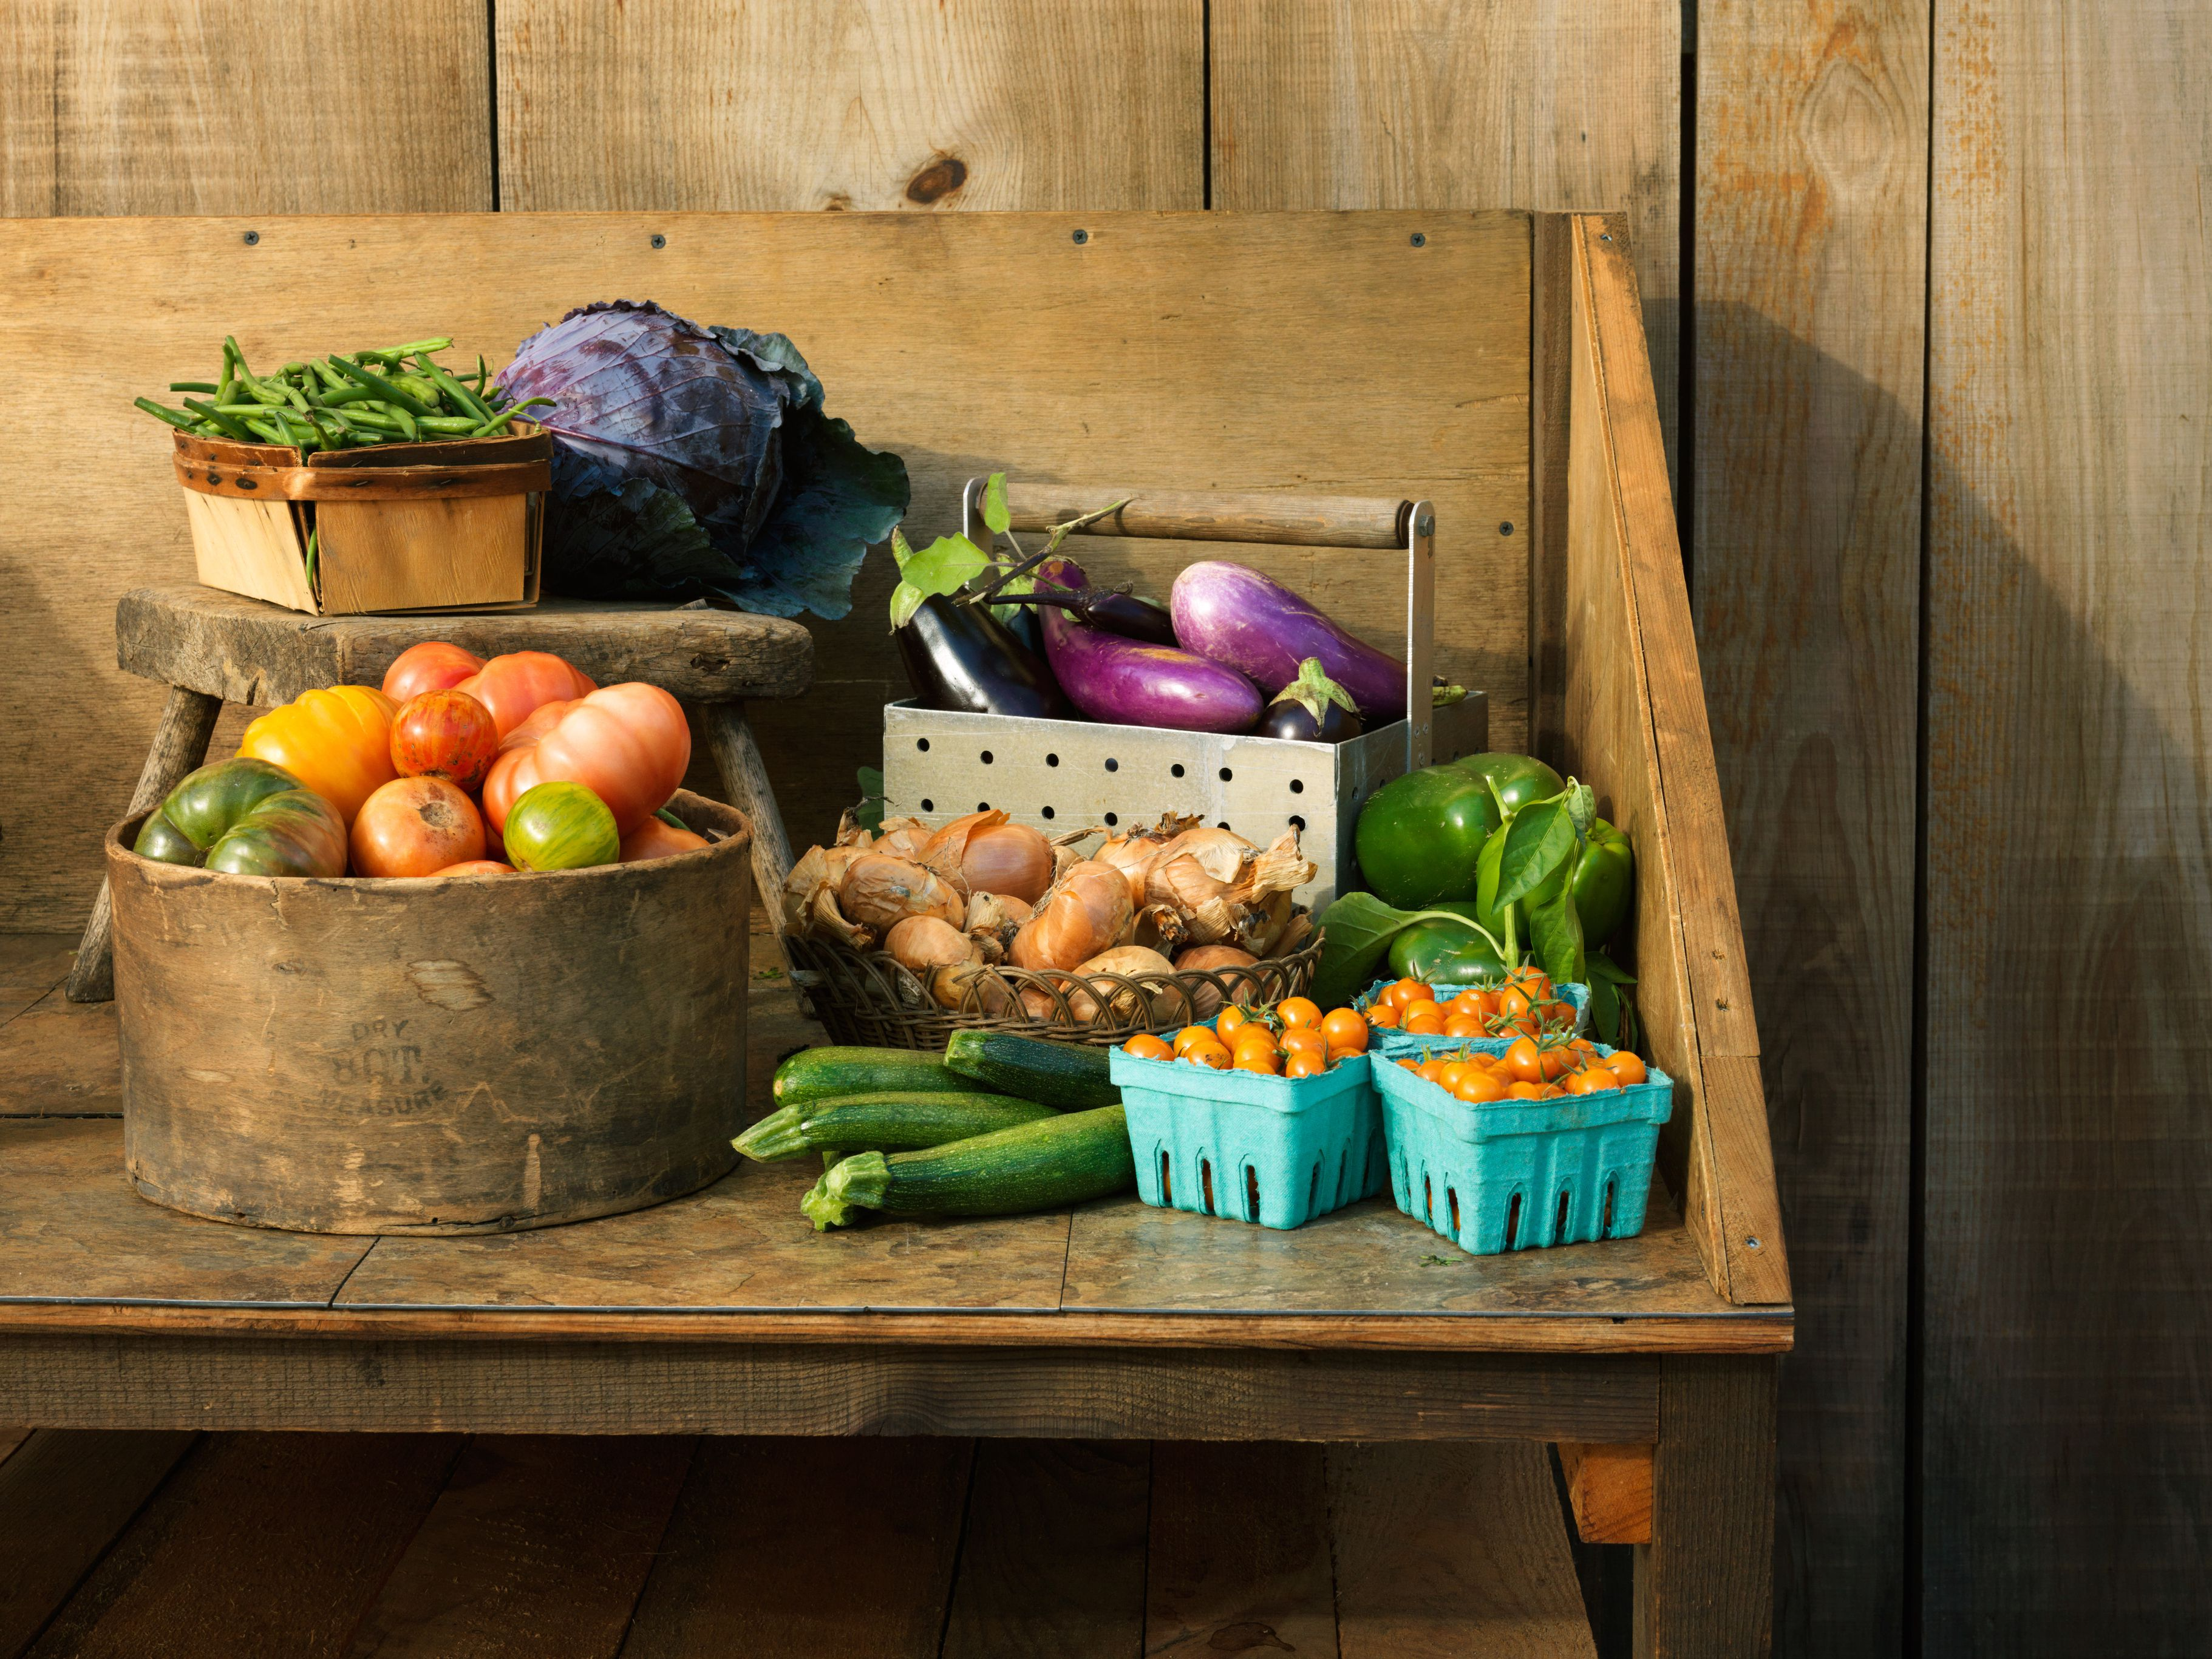 Farmstand display with fresh vegetables